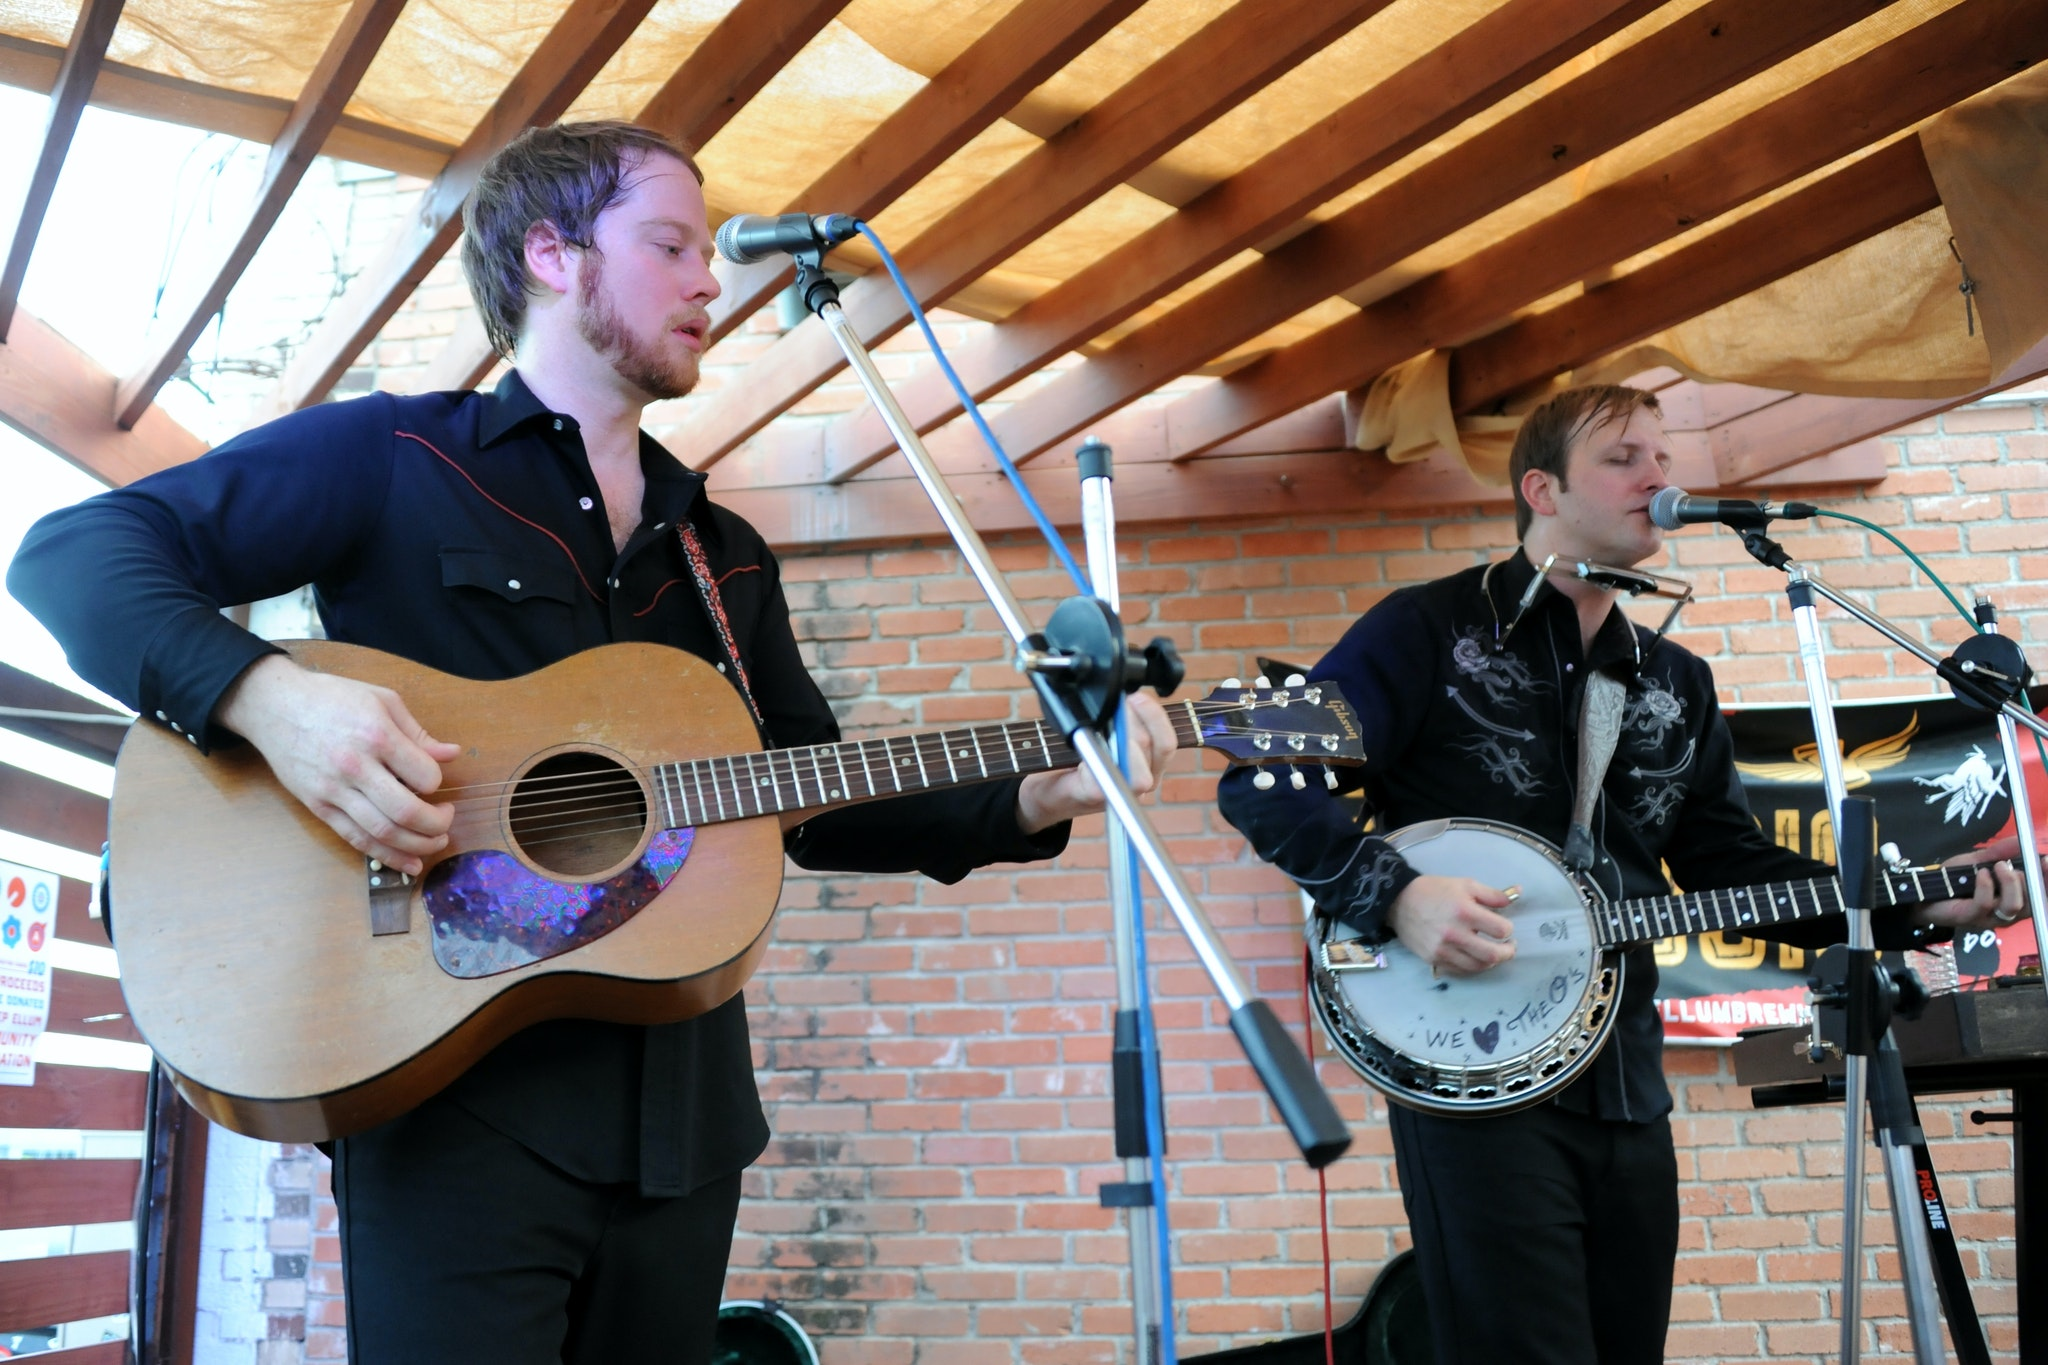 Taylor Young and John Pedigo of The O's will perform at a free show in Sammons Park on May 28.